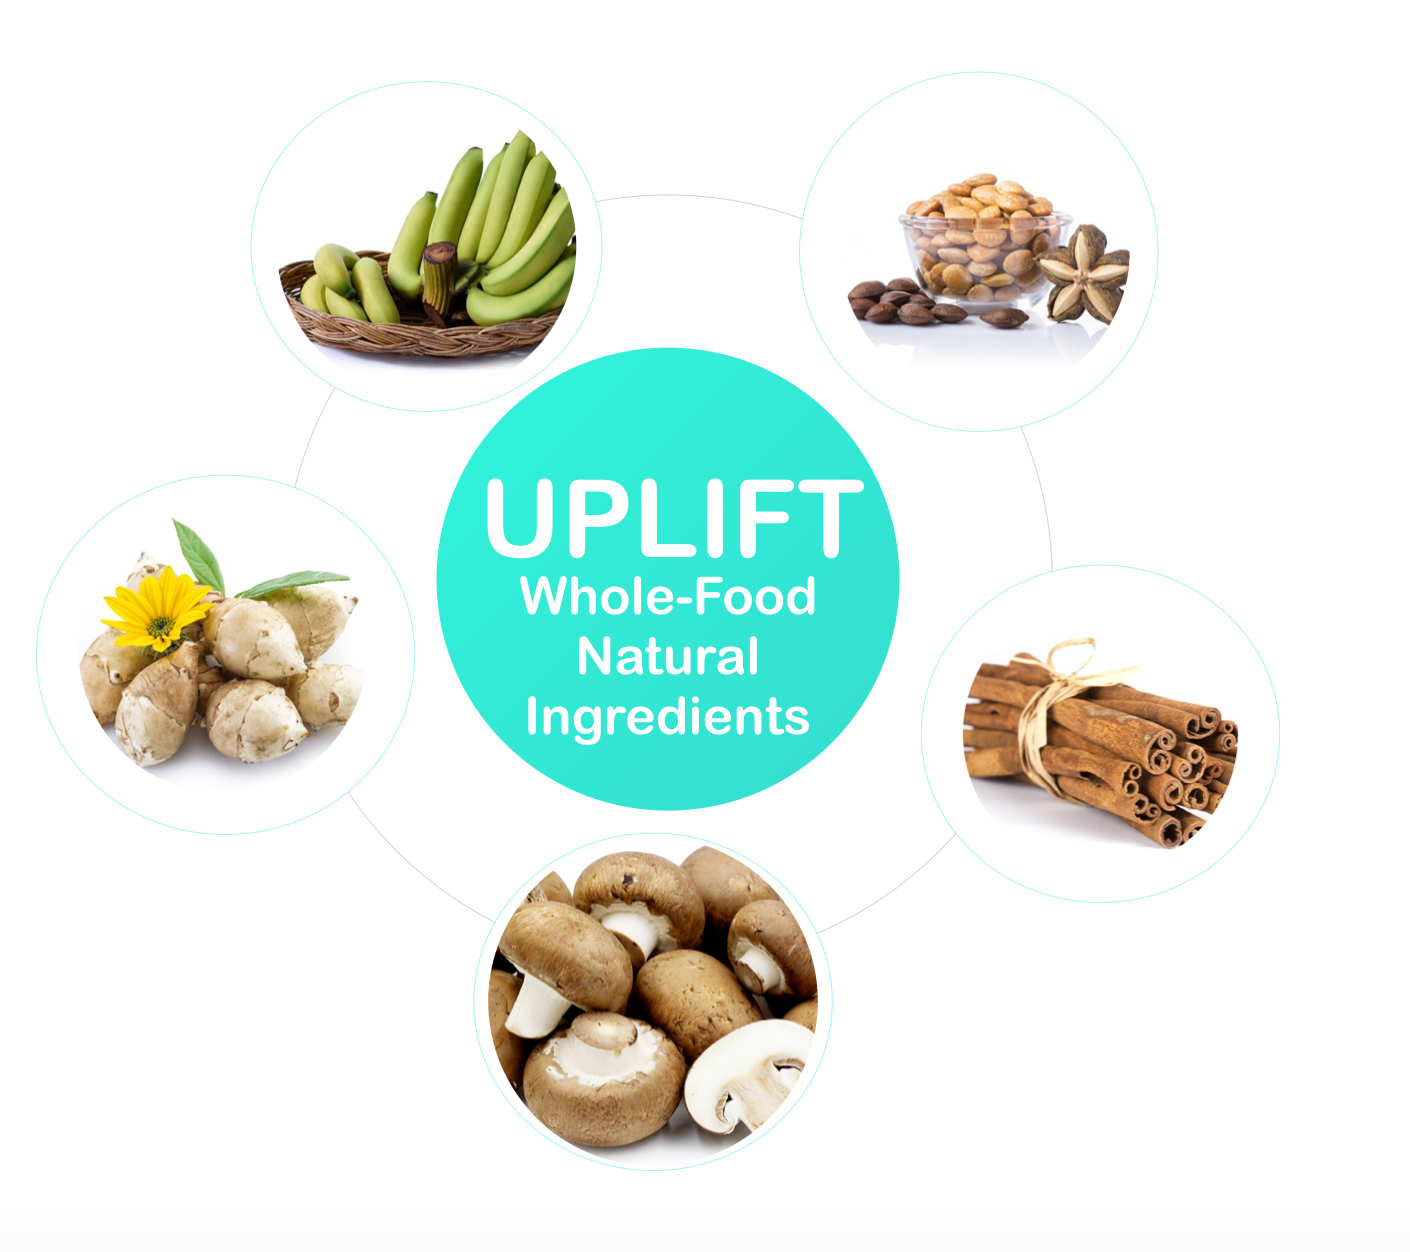 uplift food daily uplifter australia ingredients prebiotic resistant starch supplement